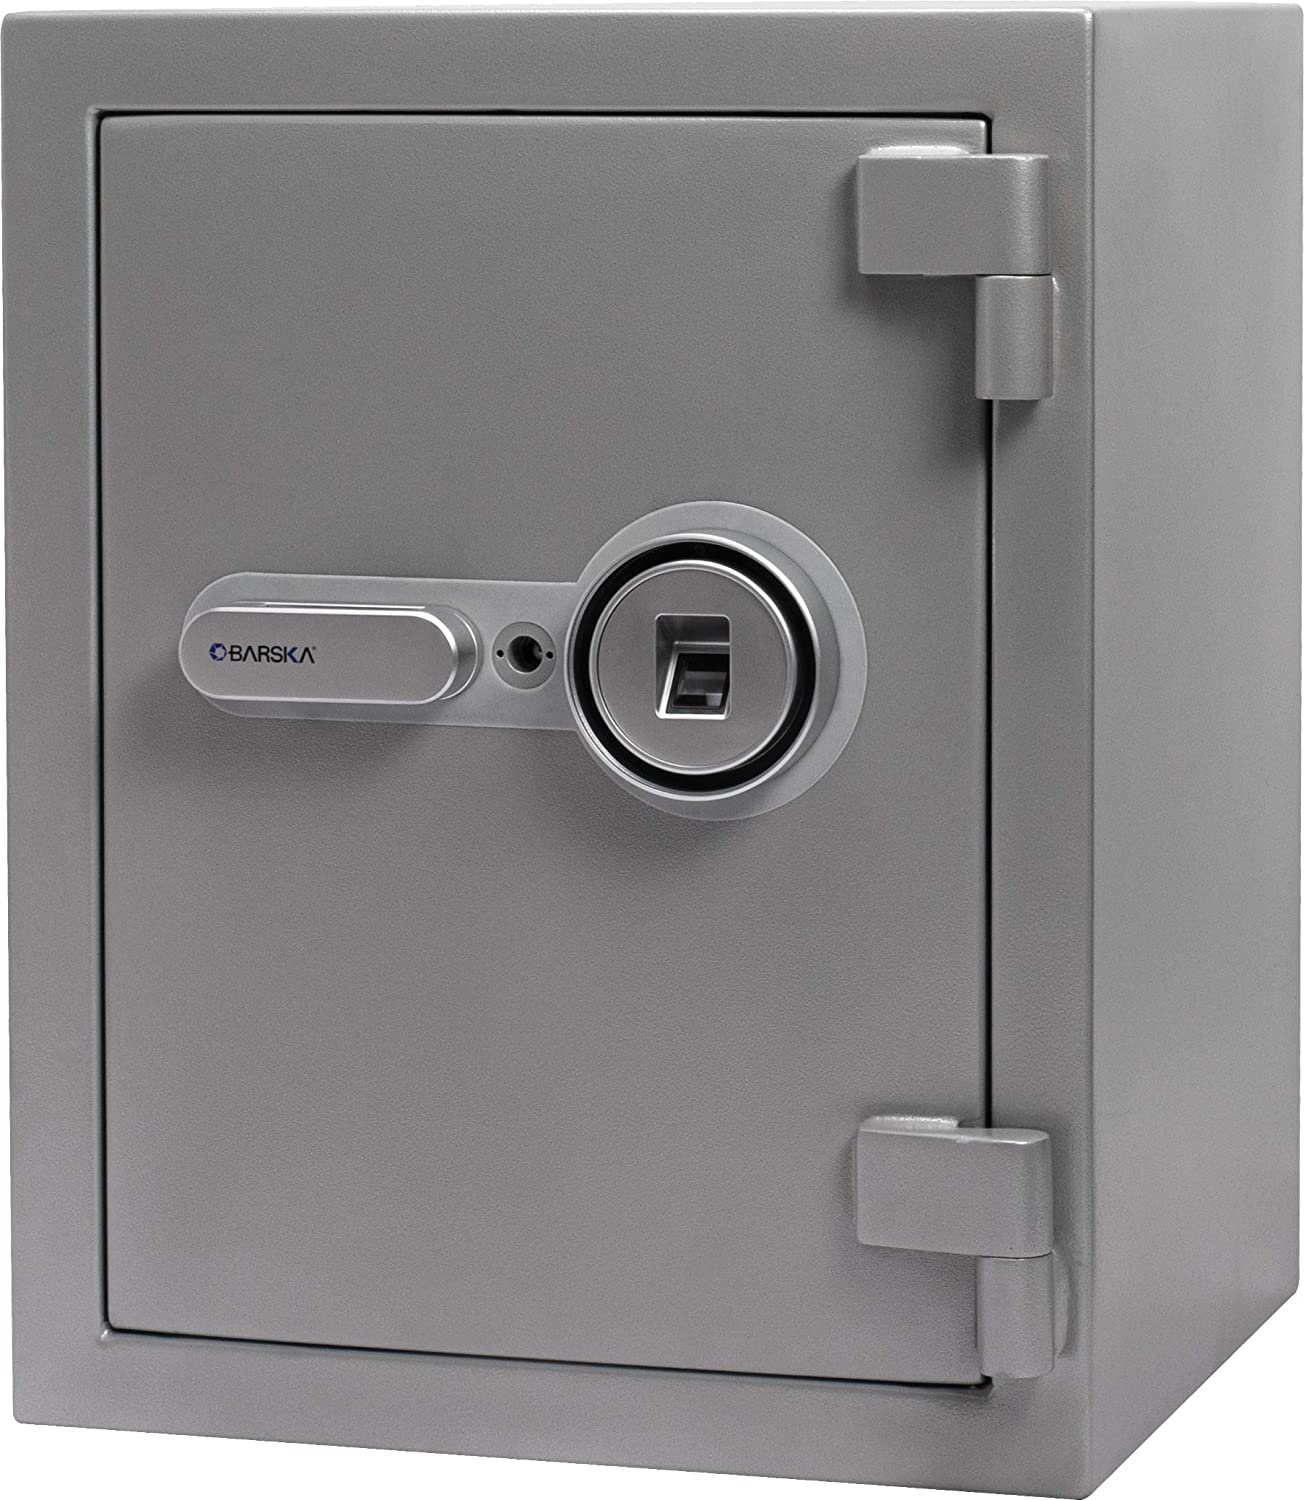 BARSKA AX13494 Biometric Fireproof Safe 1.64 Cu Ft Metallic Grey with Long Locking Bolts